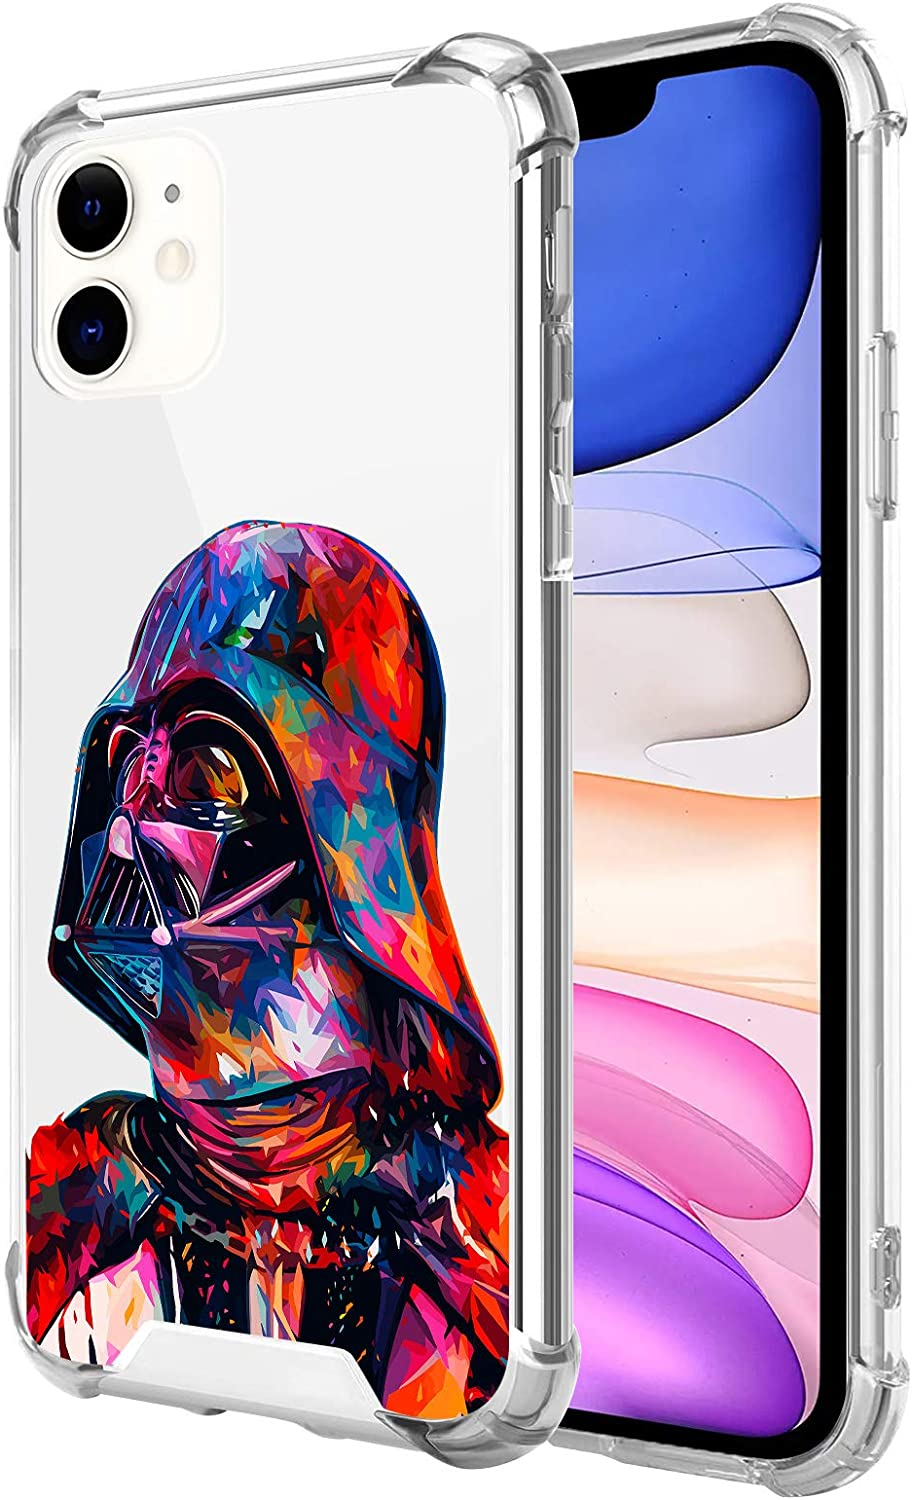 Compatible with iPhone 11 Clear Case, Shockproof Slim Fit TPU Cover Protective Phone Case for iPhone 11 6.1 inch (Star-Darth-Vader-Wars)